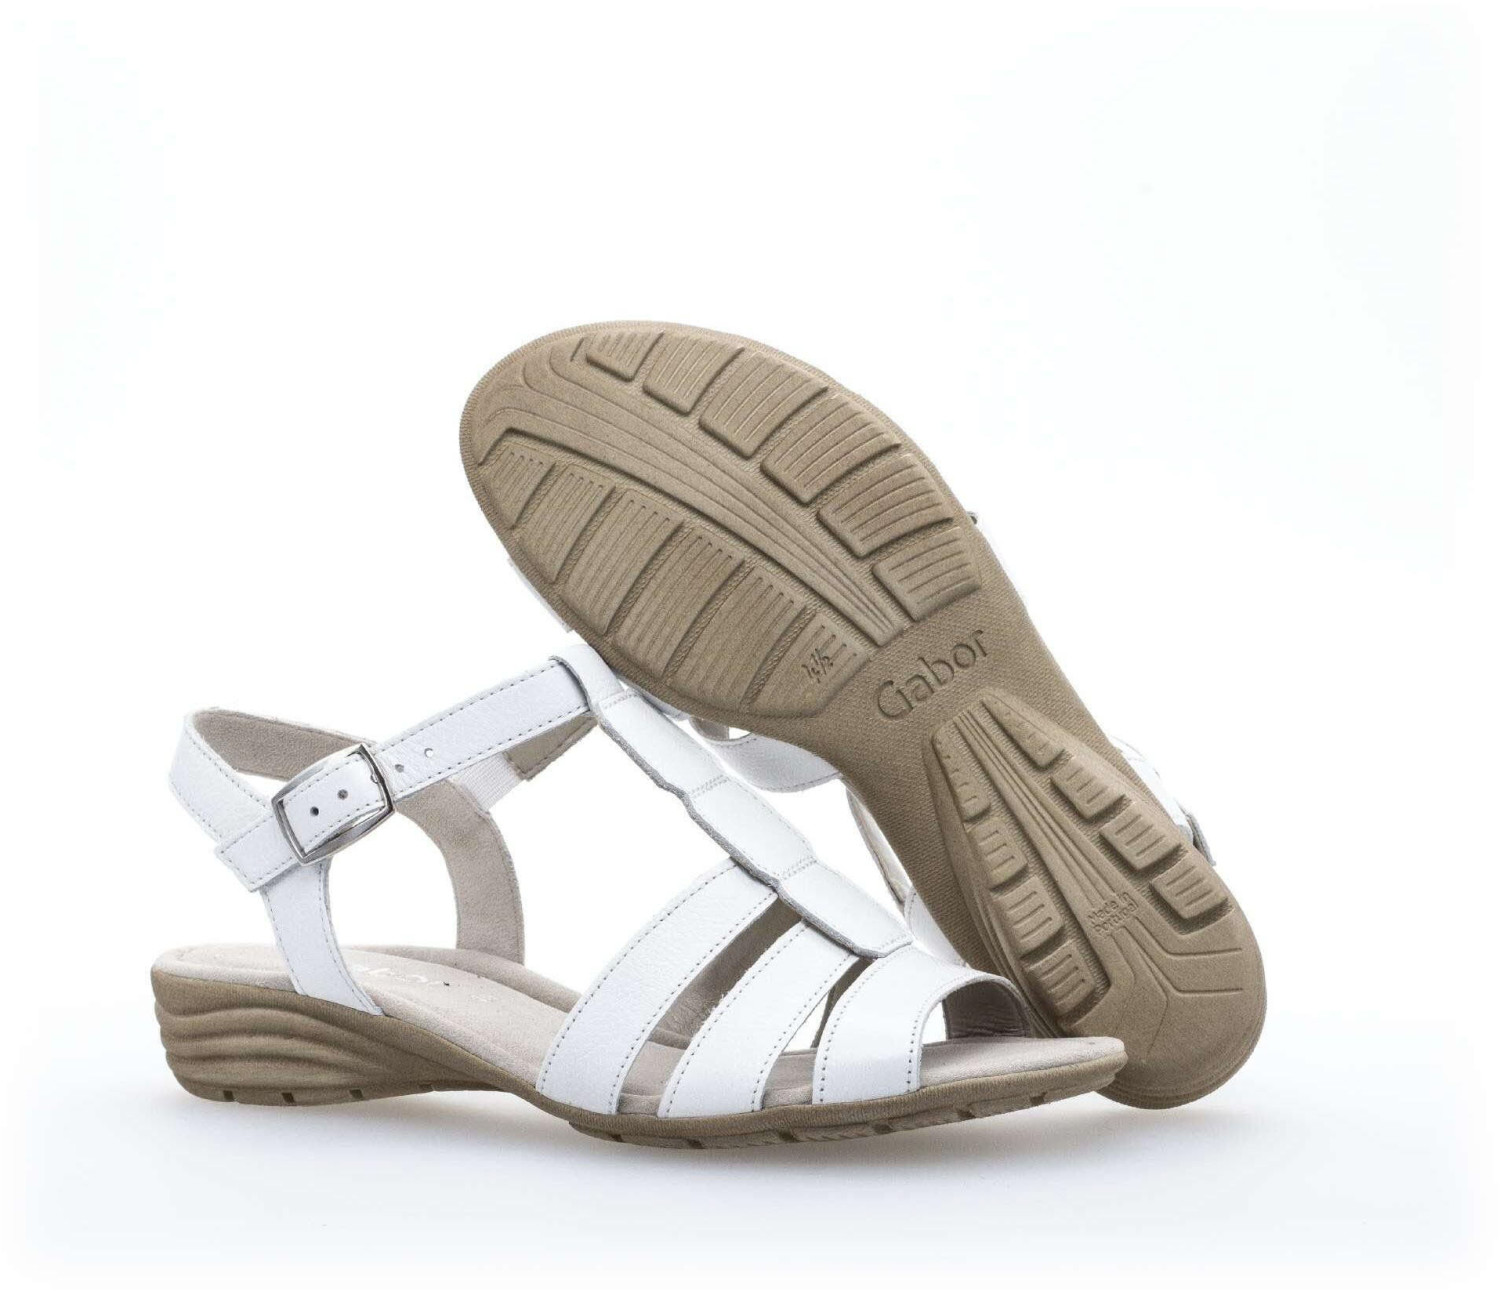 Image of Gabor Strappy Sandals (24.558)